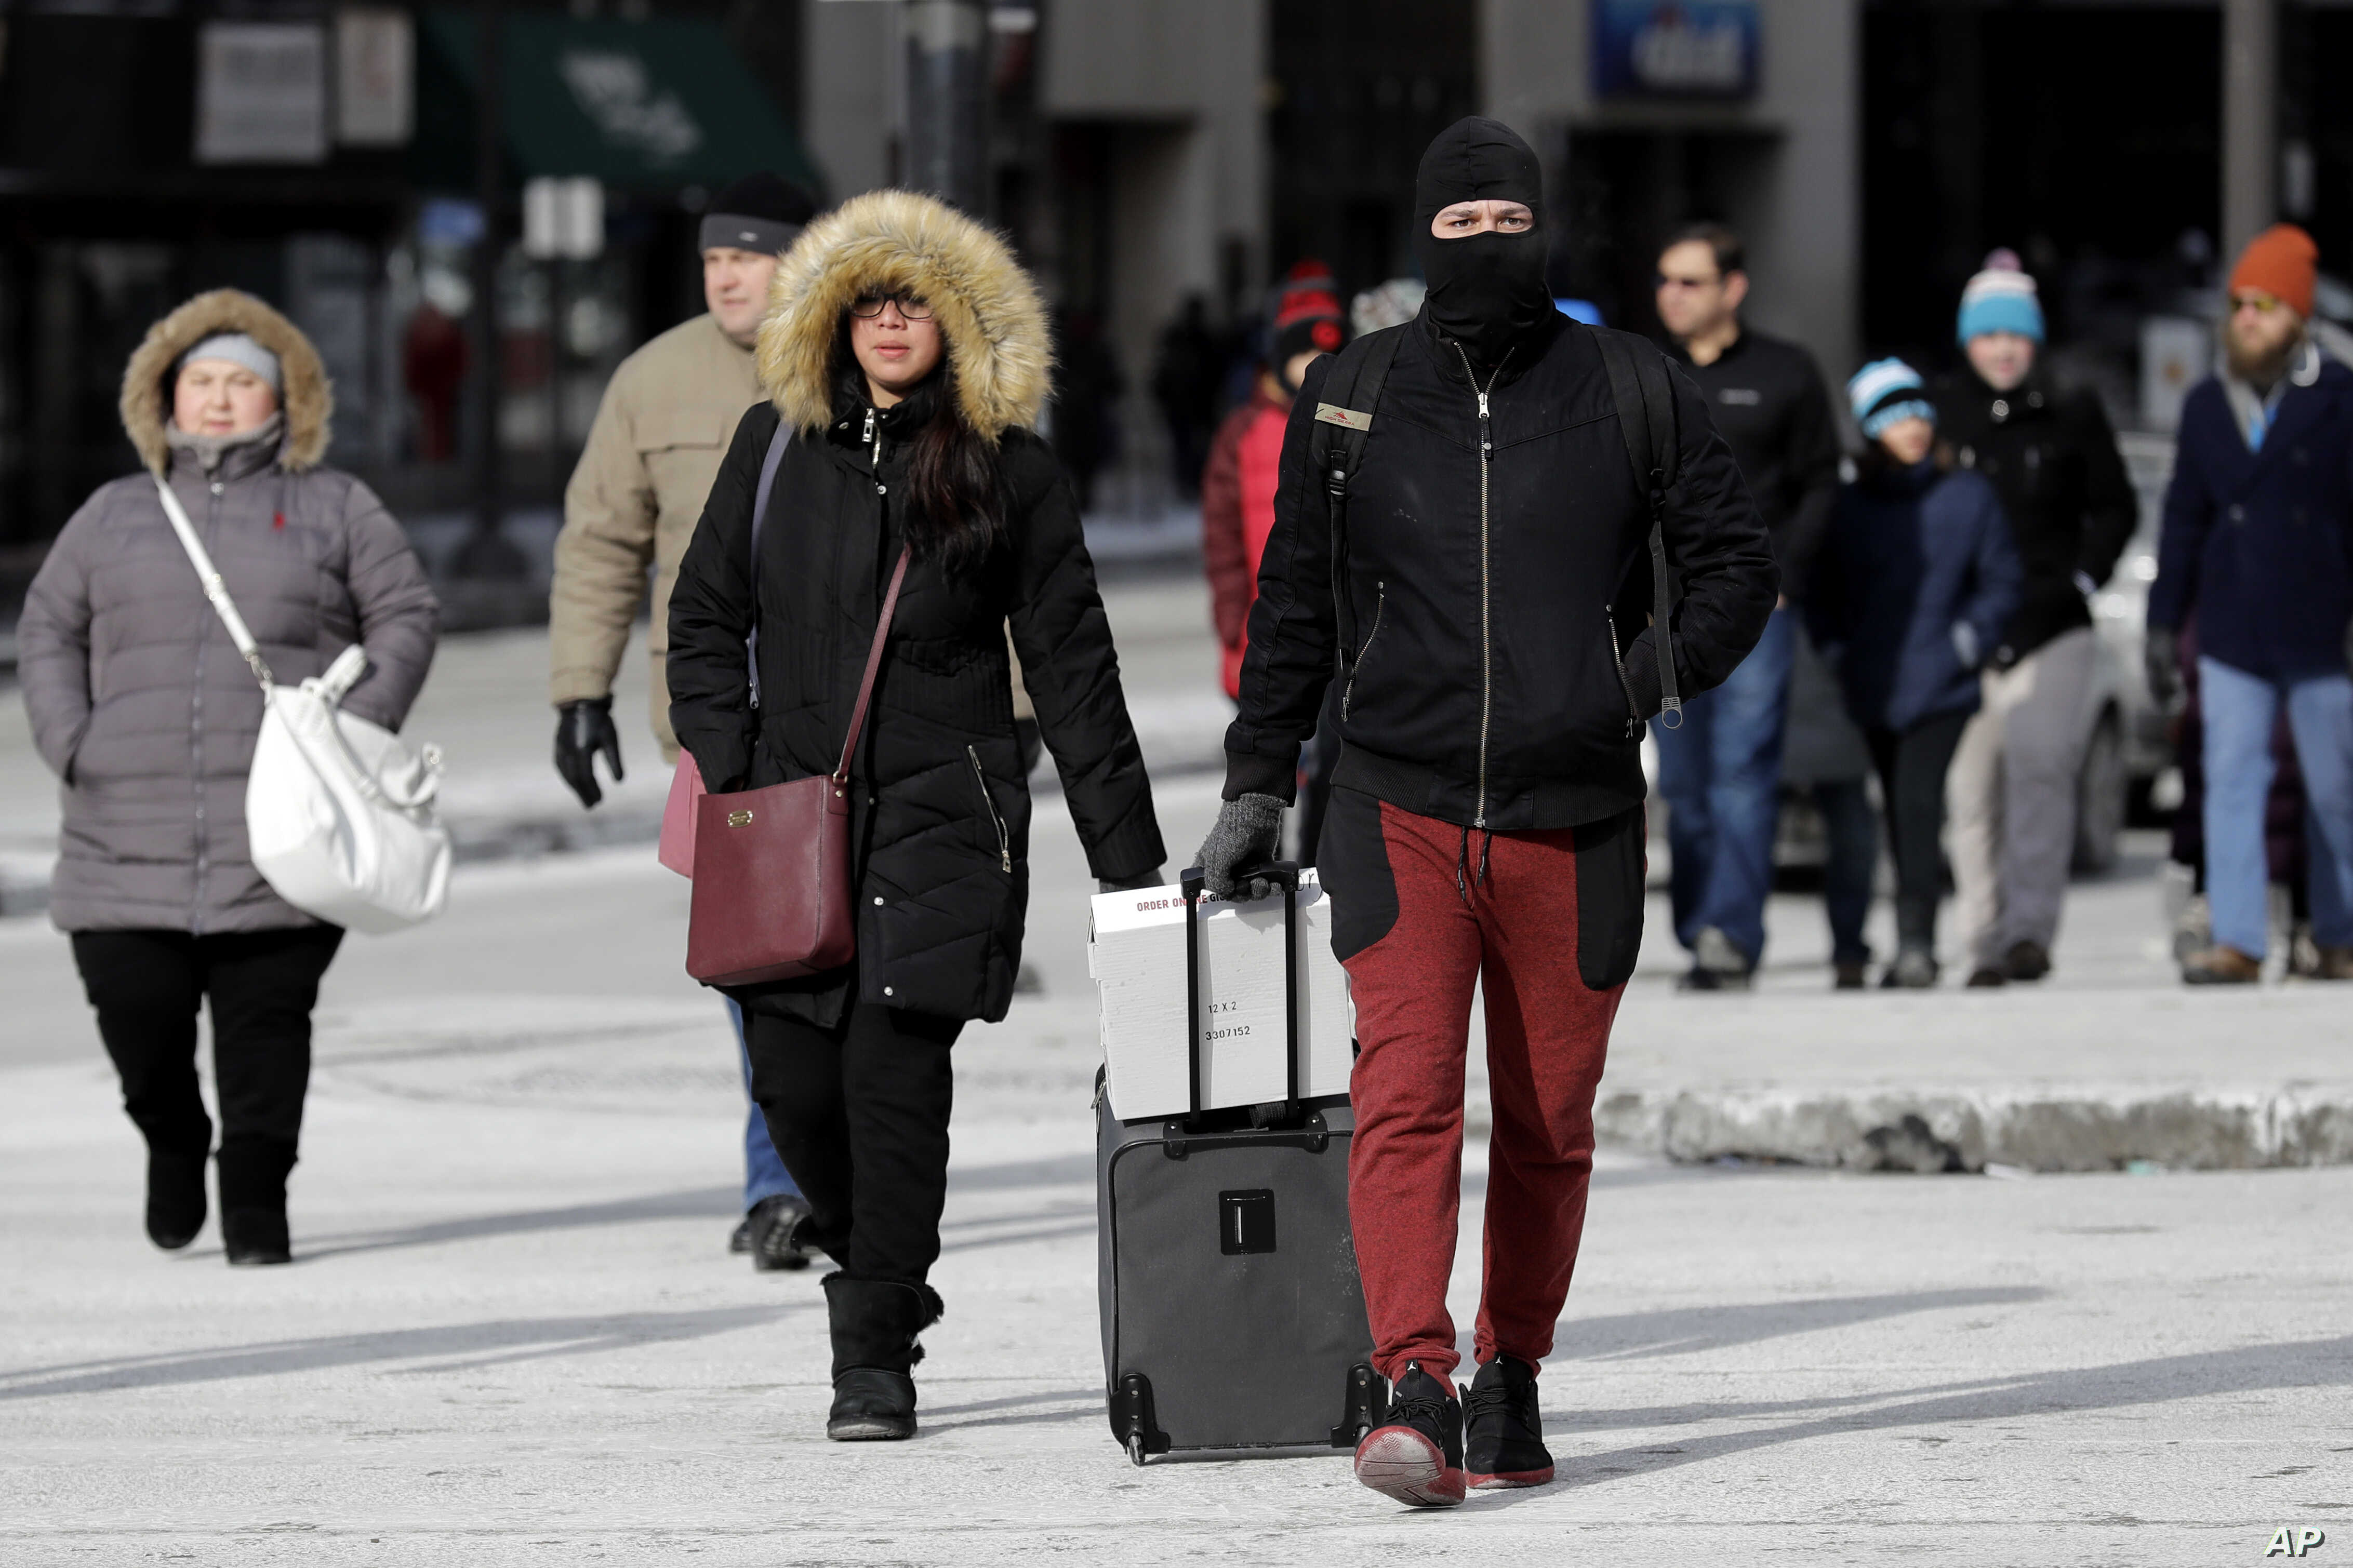 Pedestrians are bundled up against frigid temperatures, in Chicago, Illinois, Dec. 31, 2017.